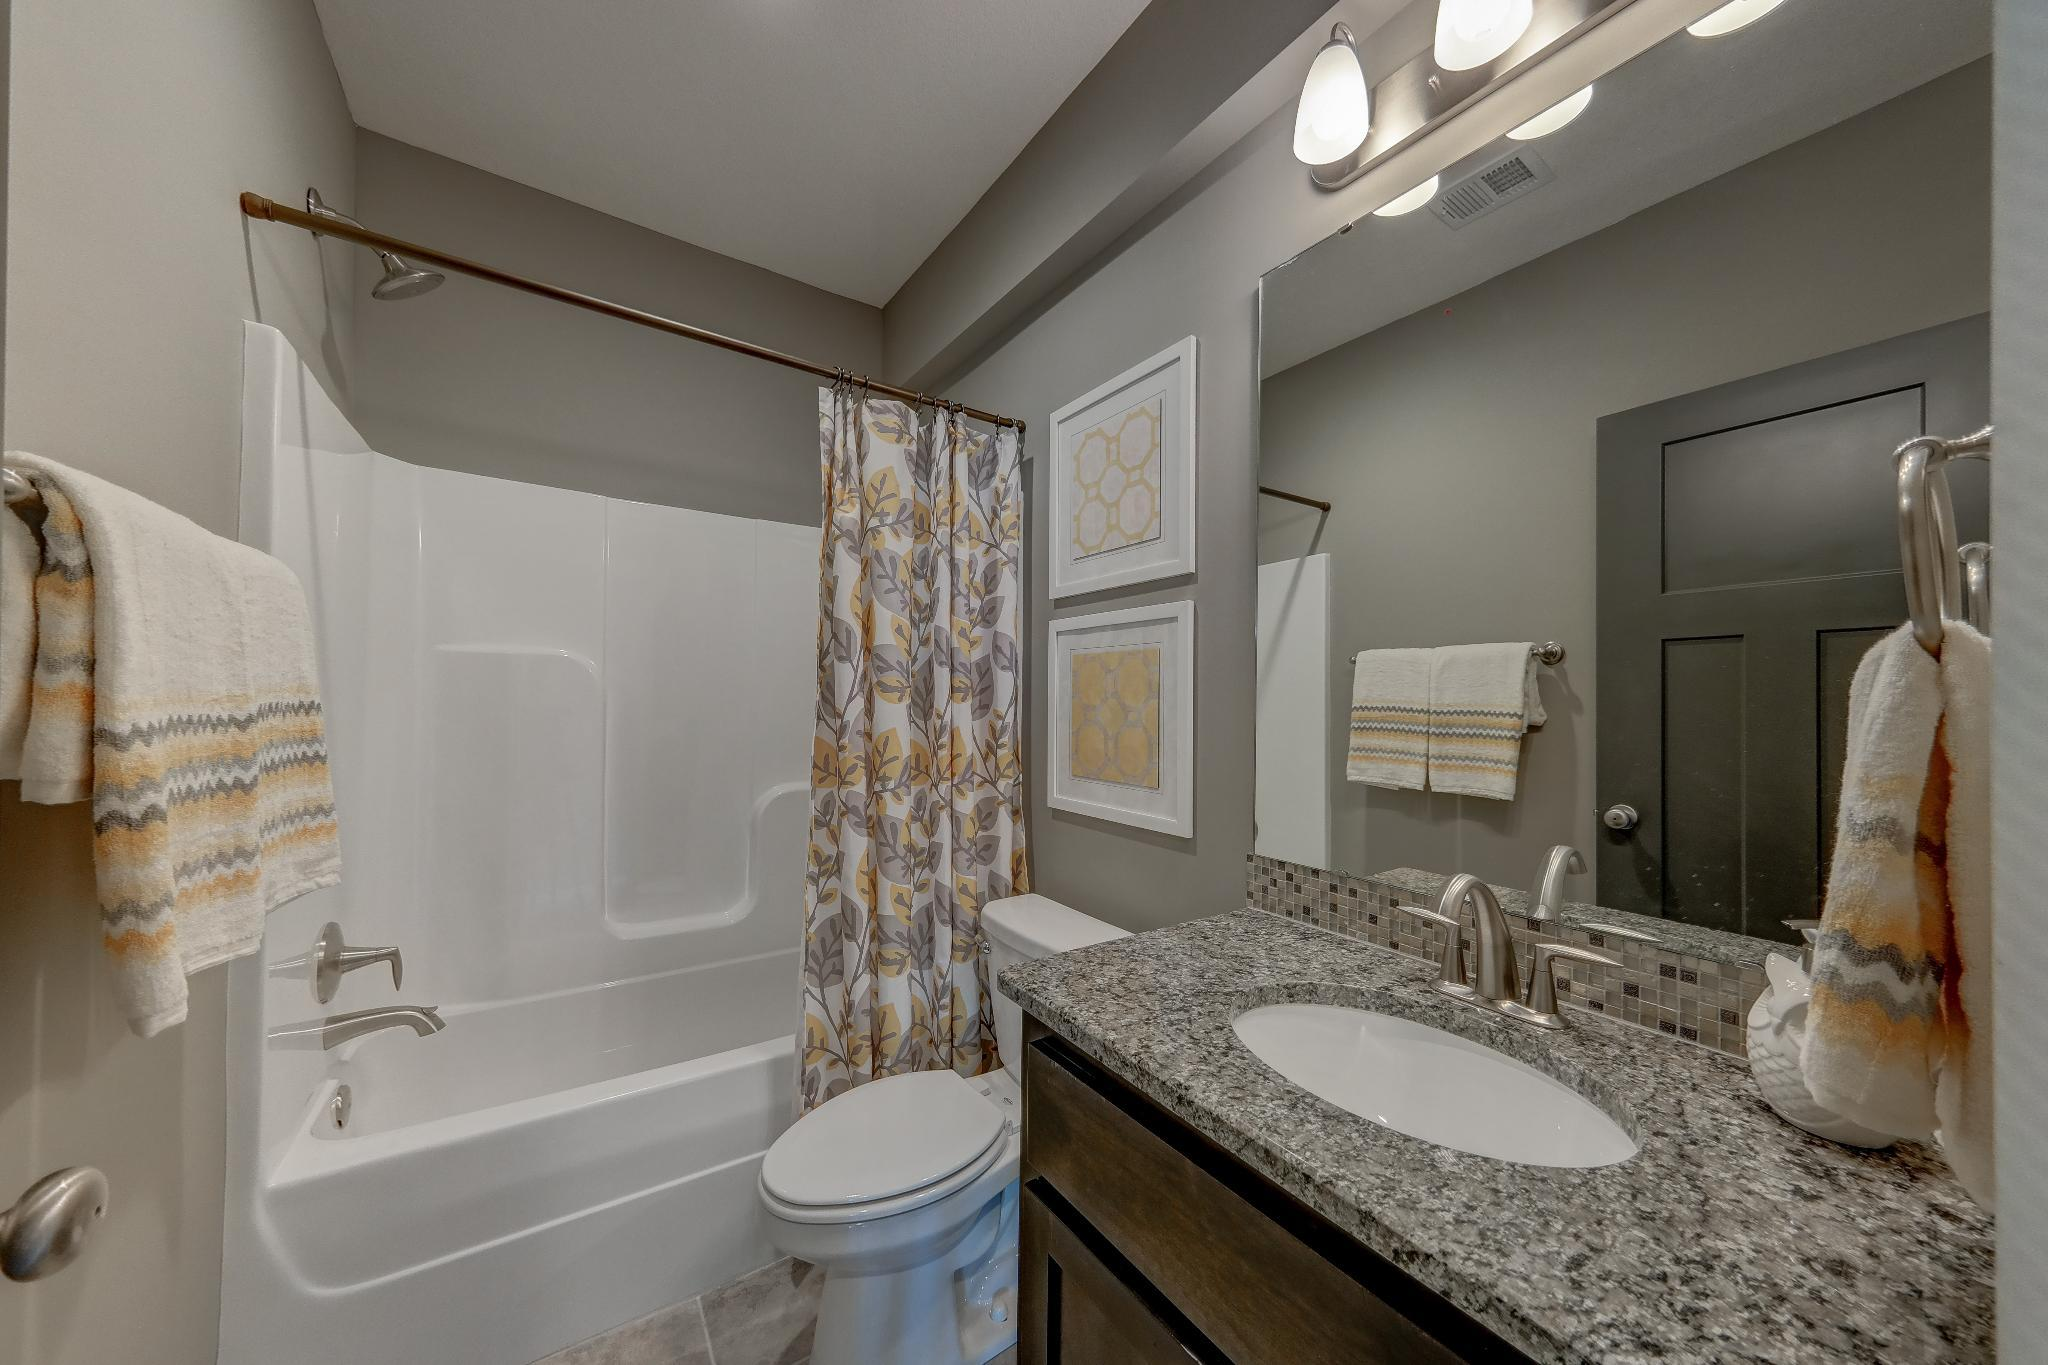 Bathroom featured in the Meadowbrook By Summit Homes in Kansas City, MO